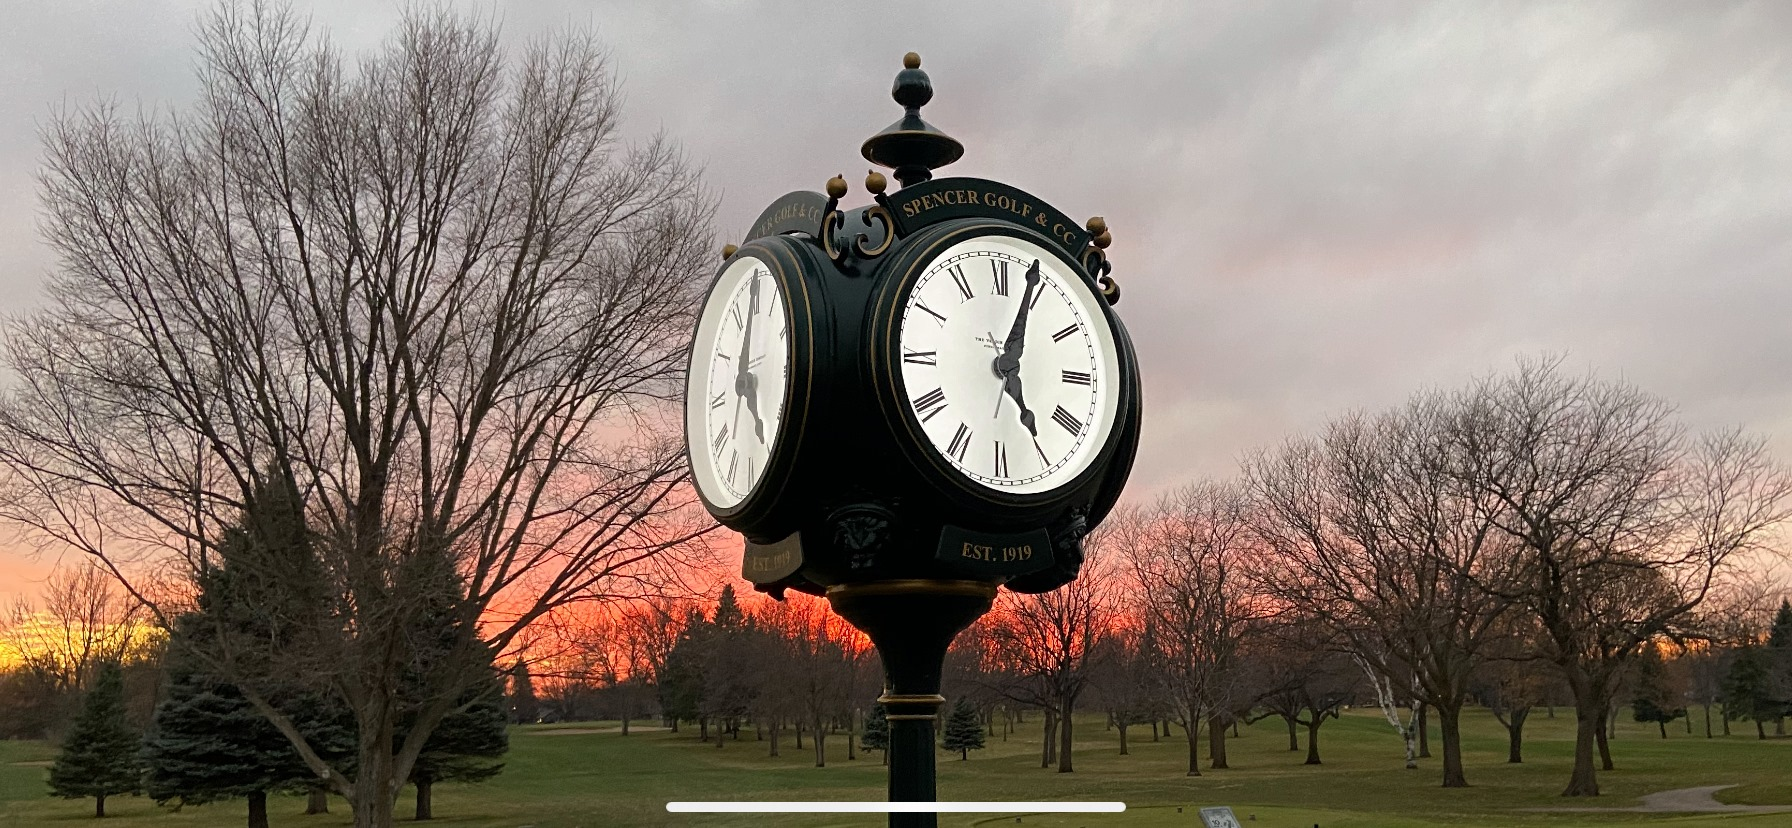 Spencer Golf and Country Club Clock